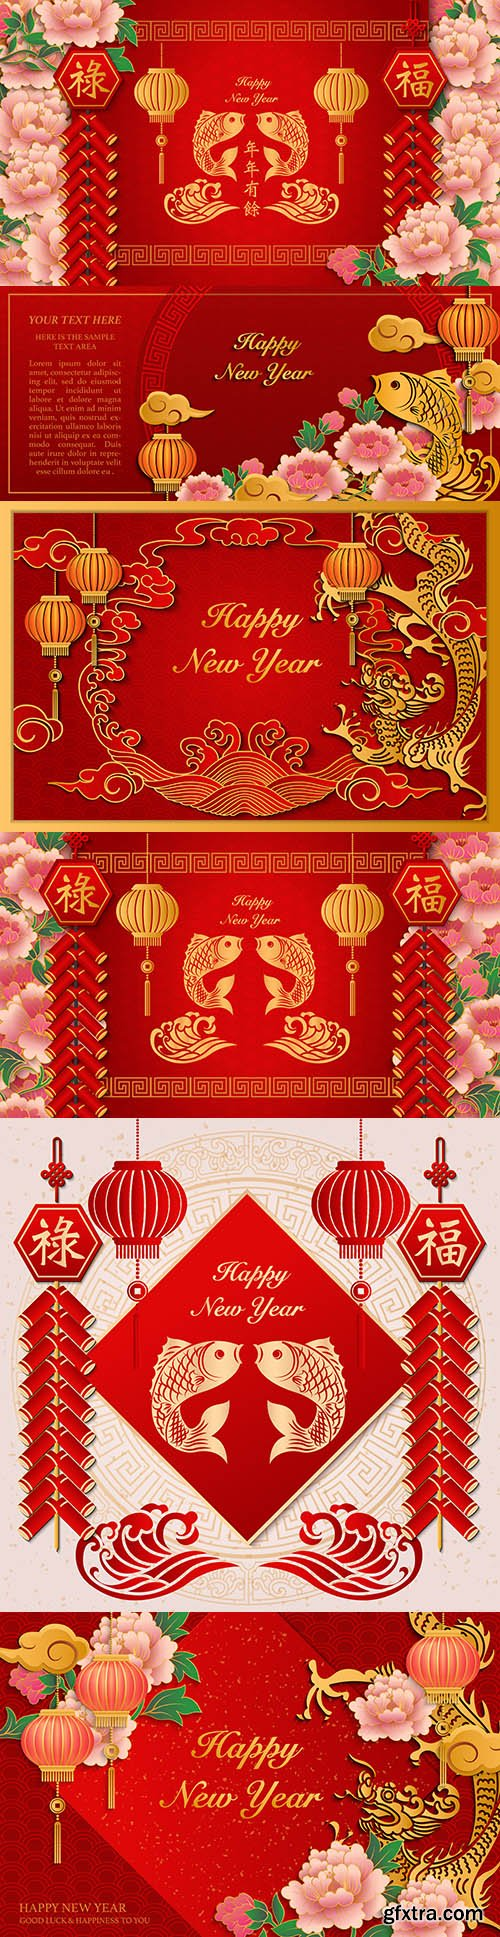 Happy Chinese New Year retro red design illustration